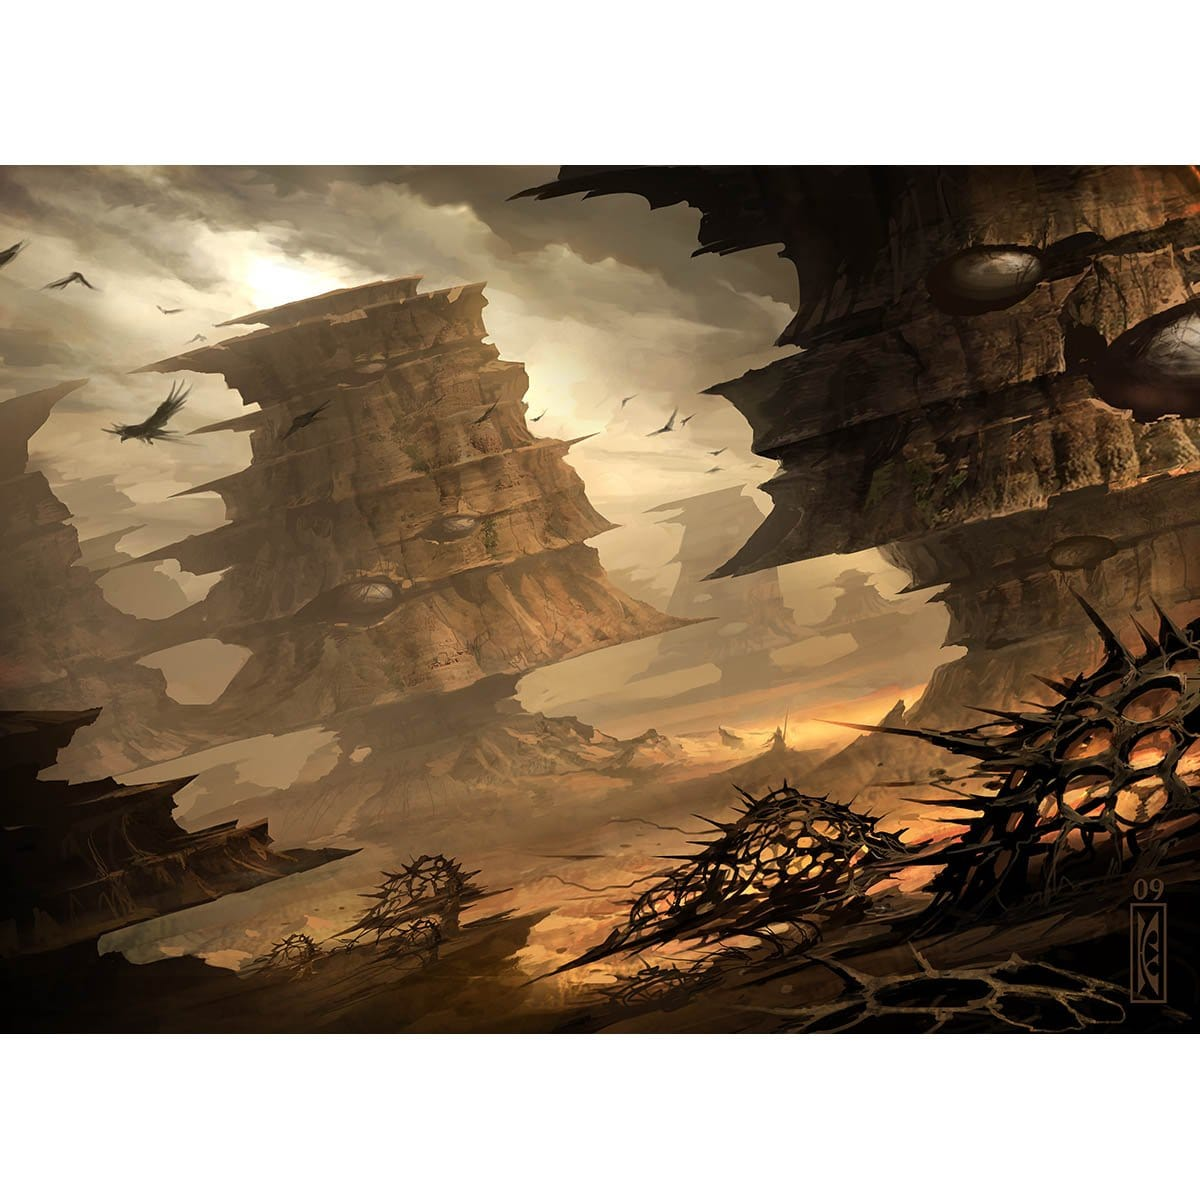 Arid Mesa Print - Print - Original Magic Art - Accessories for Magic the Gathering and other card games